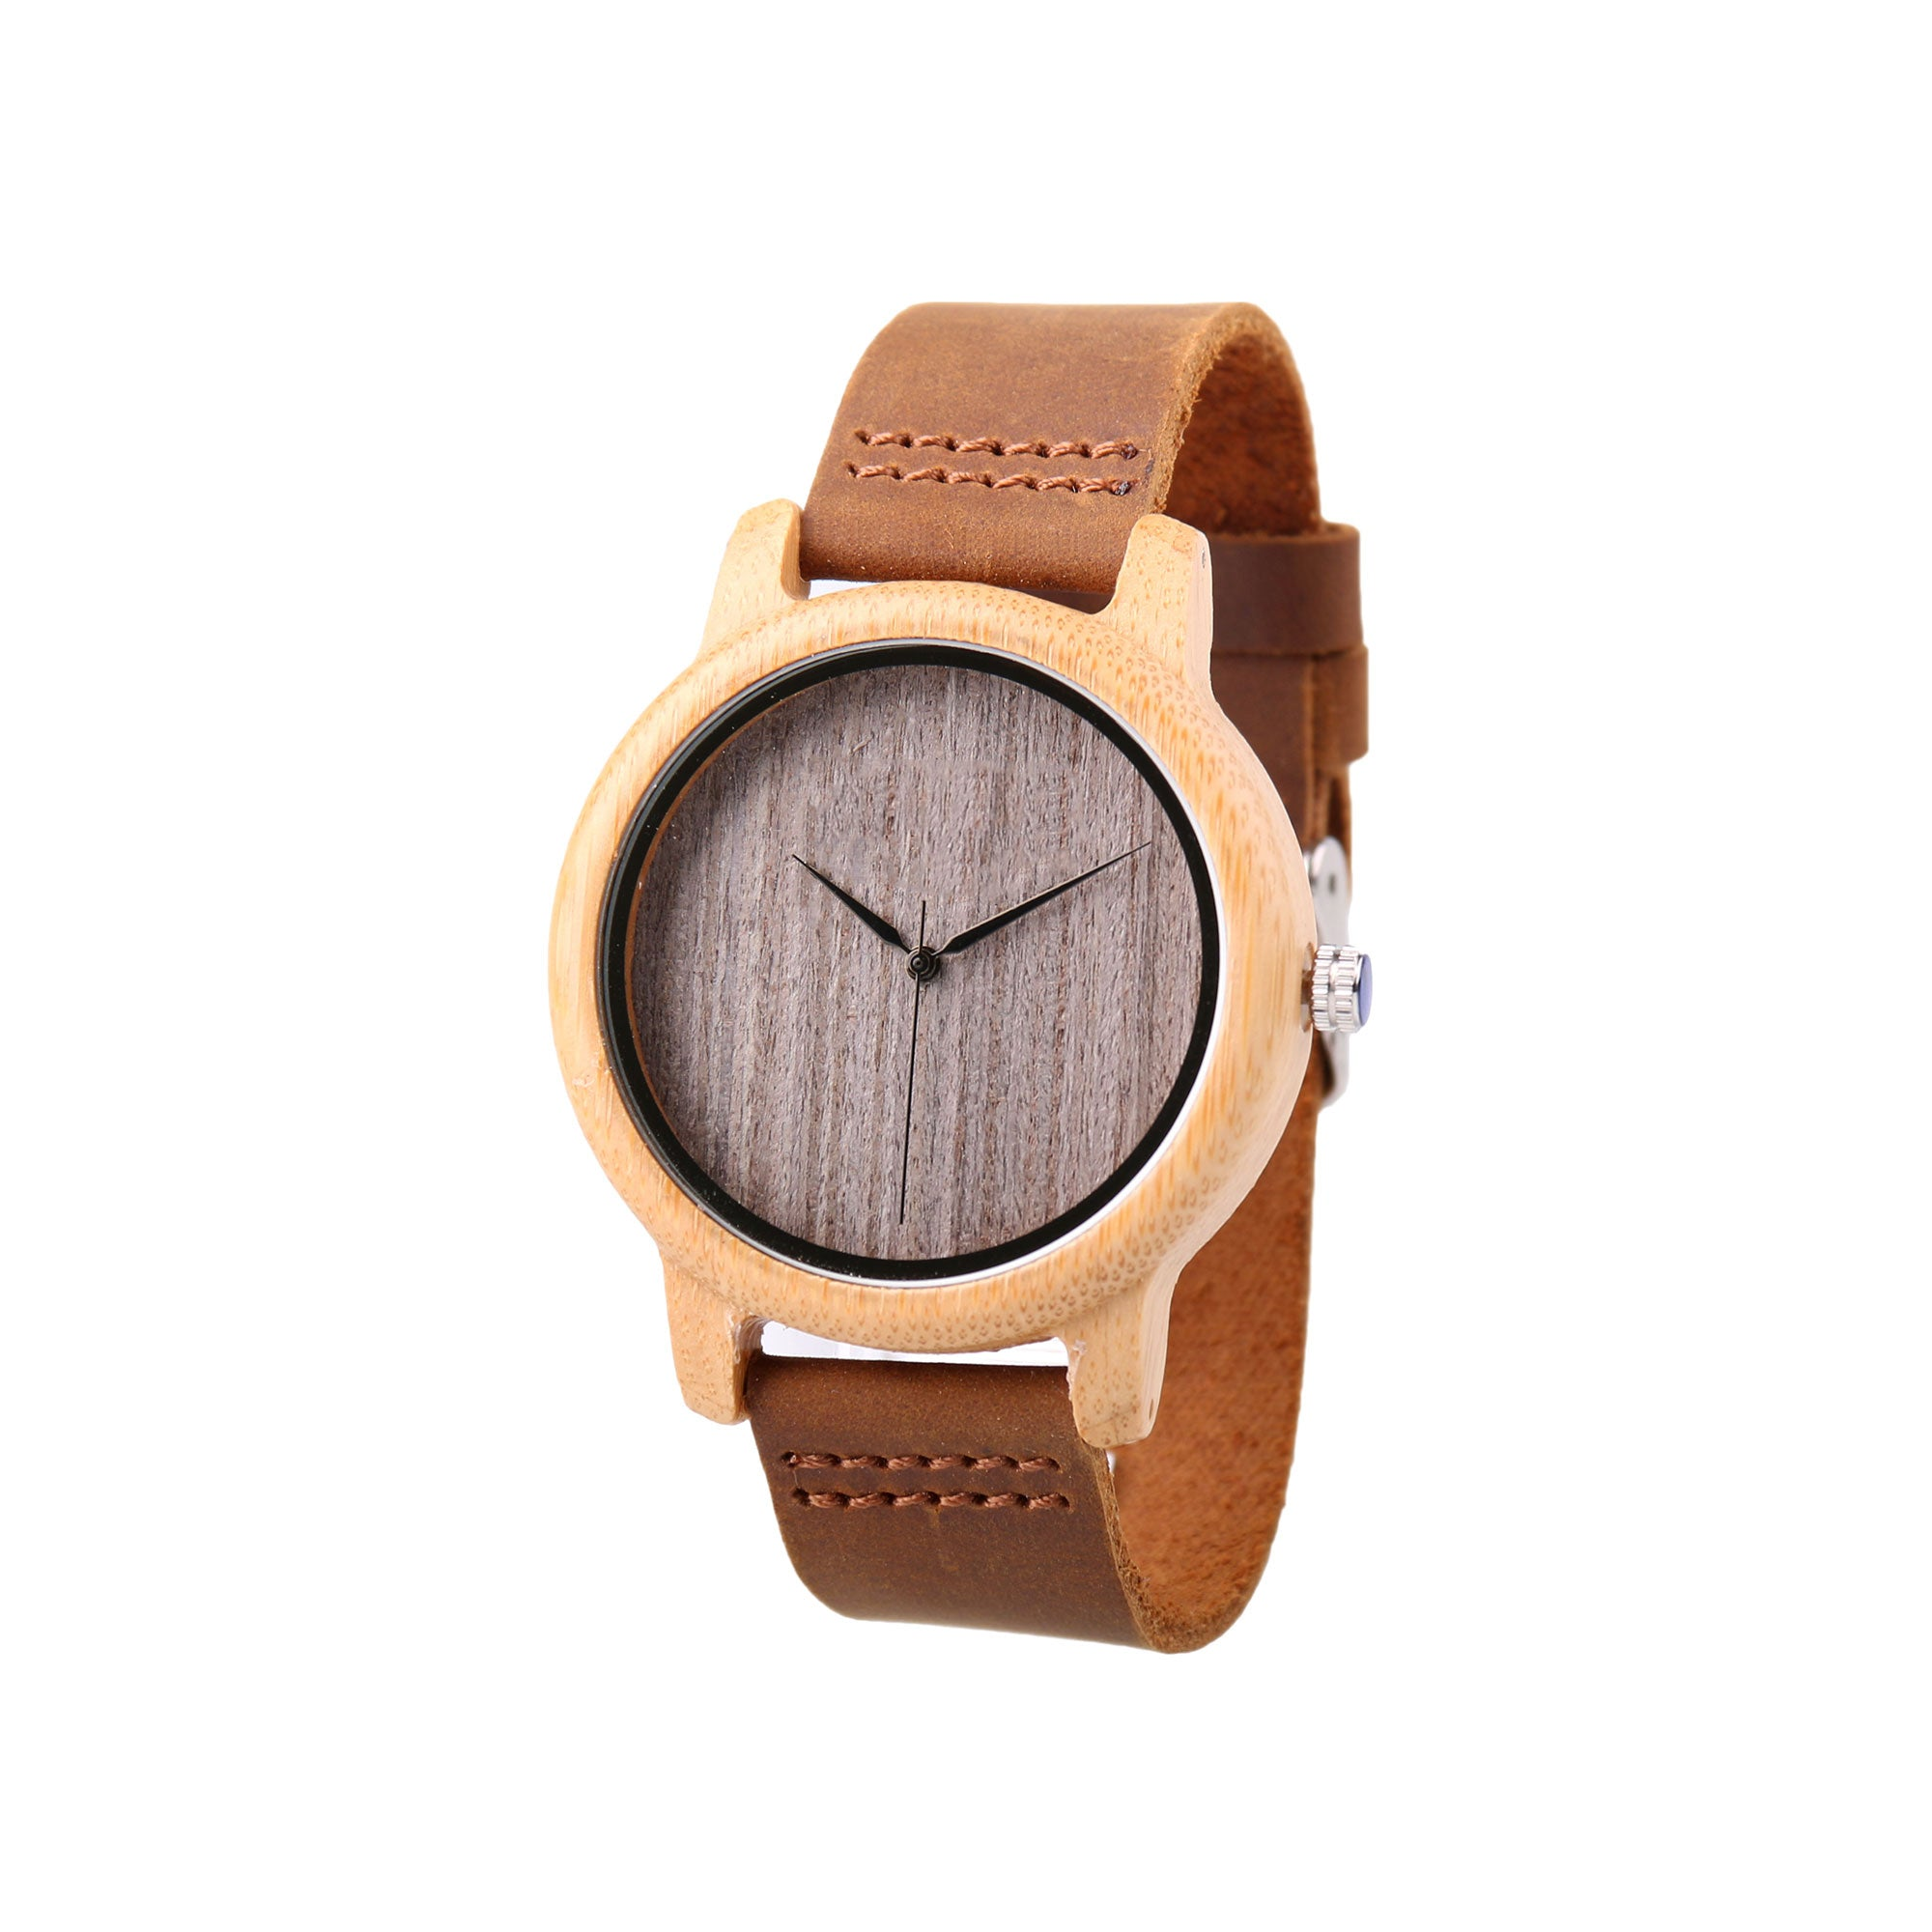 Ralph Wood Watch | Light Wood | Leather Strap